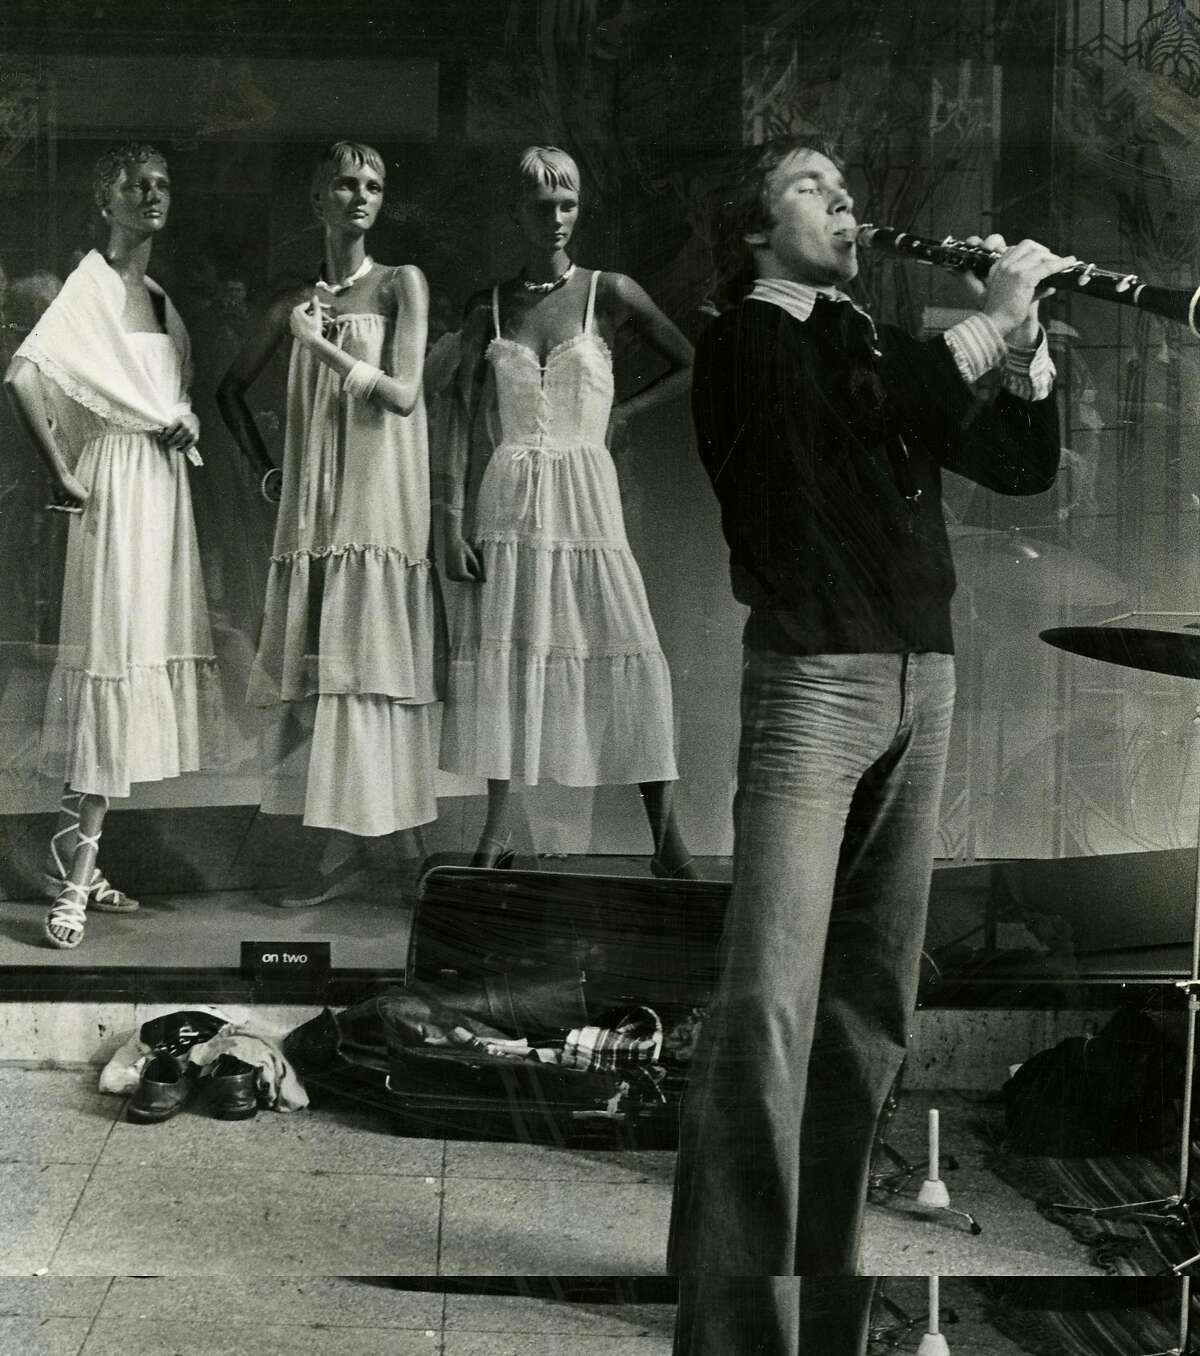 A clarinetist performs in San Francisco on Jan. 2, 1978.